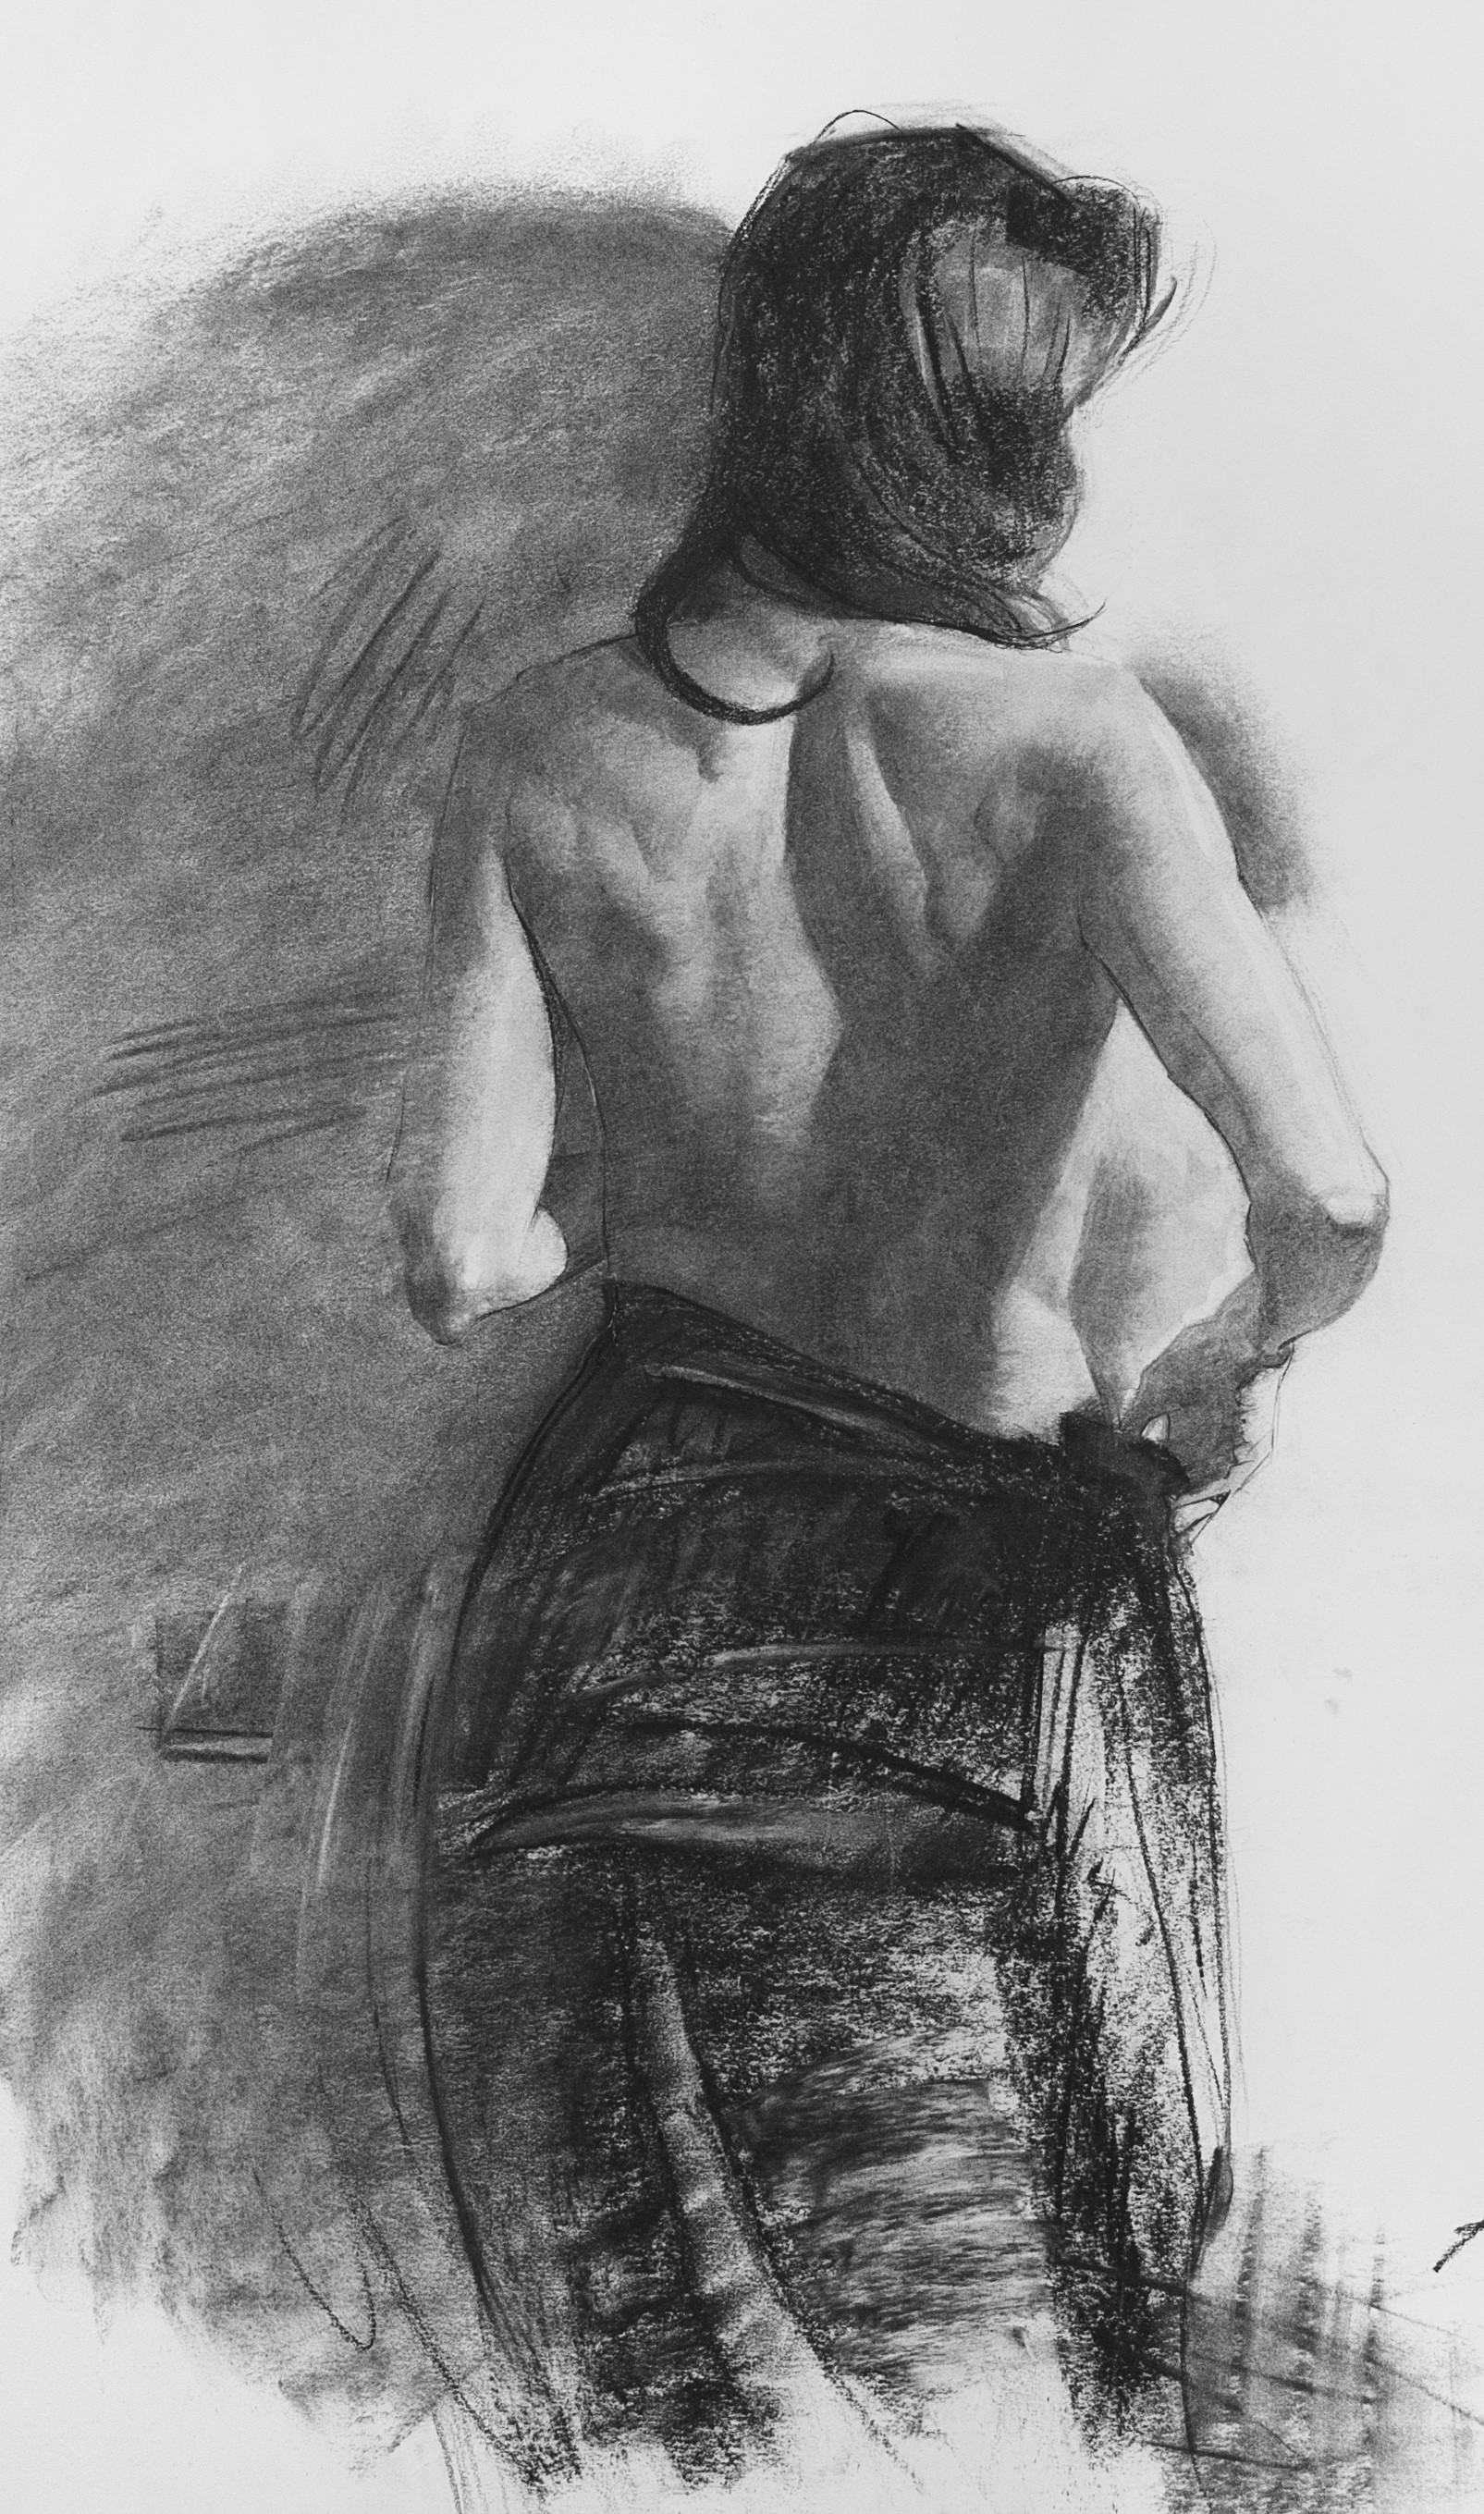 charcoal 18 x 24 inches